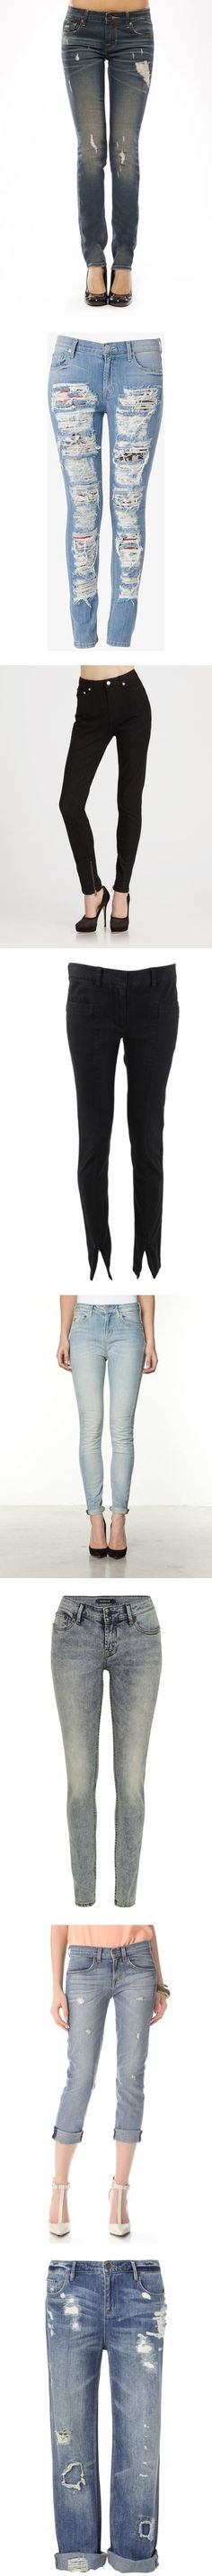 """""""The Next Big Jean Trends, Straight From the Denim Capital"""" by polyvore ❤ liked on Polyvore"""